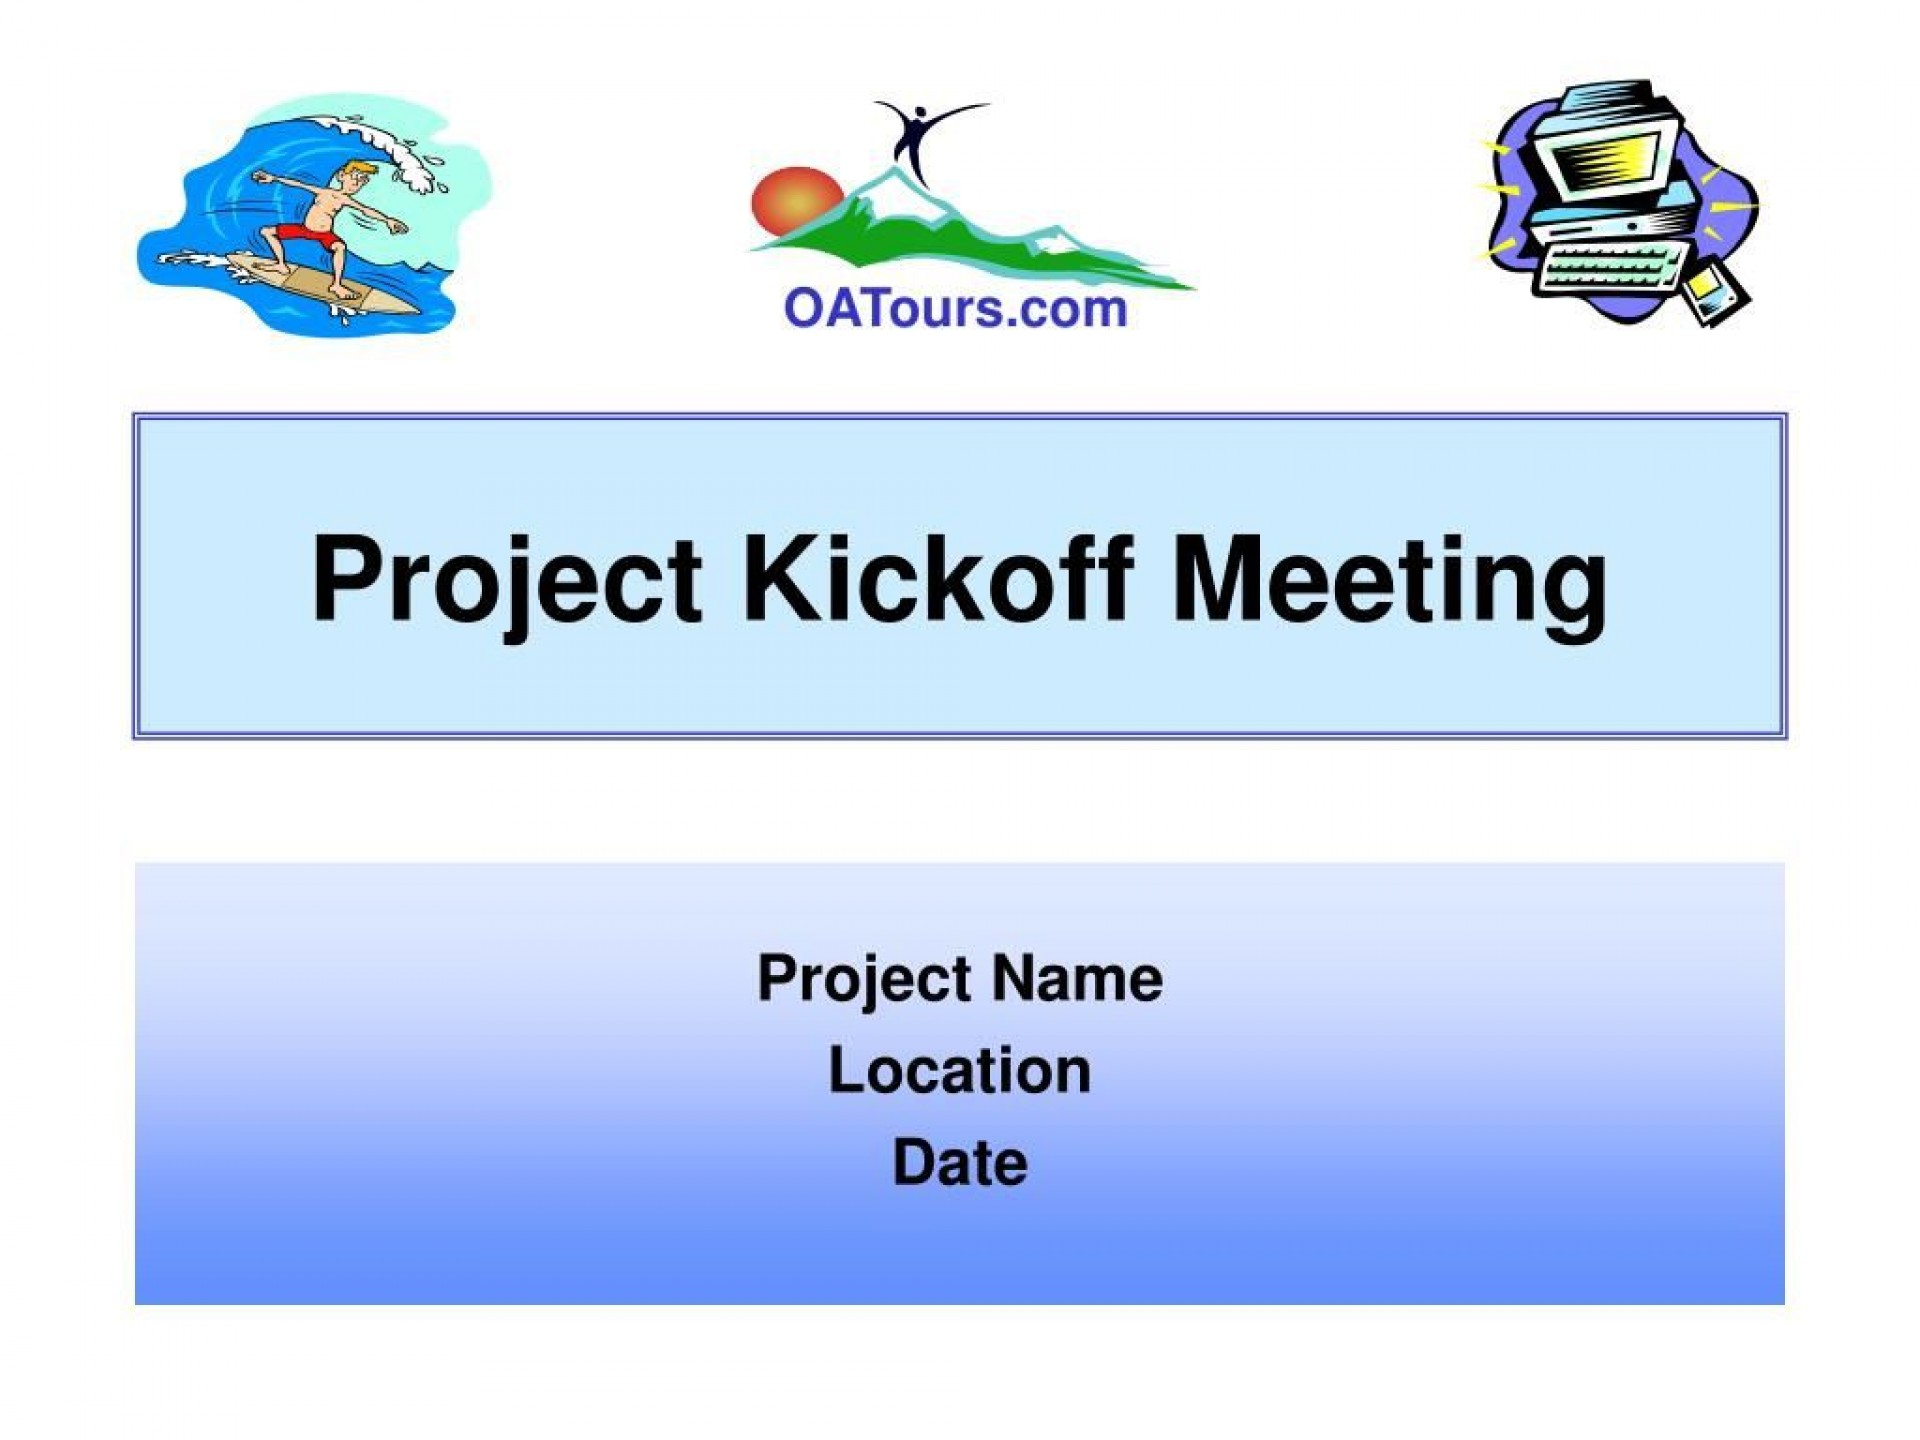 010 Beautiful Project Kickoff Meeting Template Ppt High Resolution  Free Kick Off Management1920